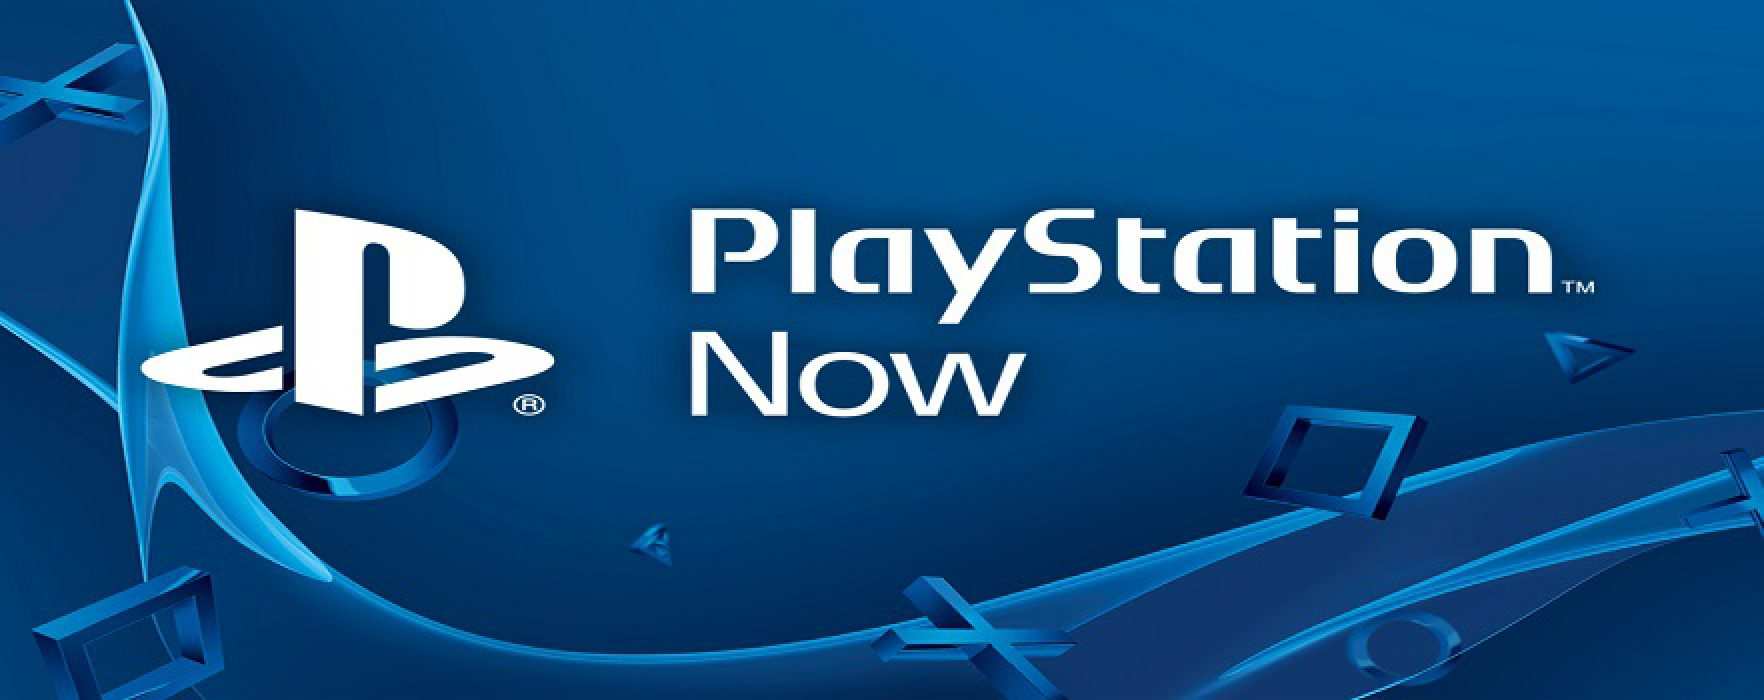 PlayStation 4 Games Coming To PS Now